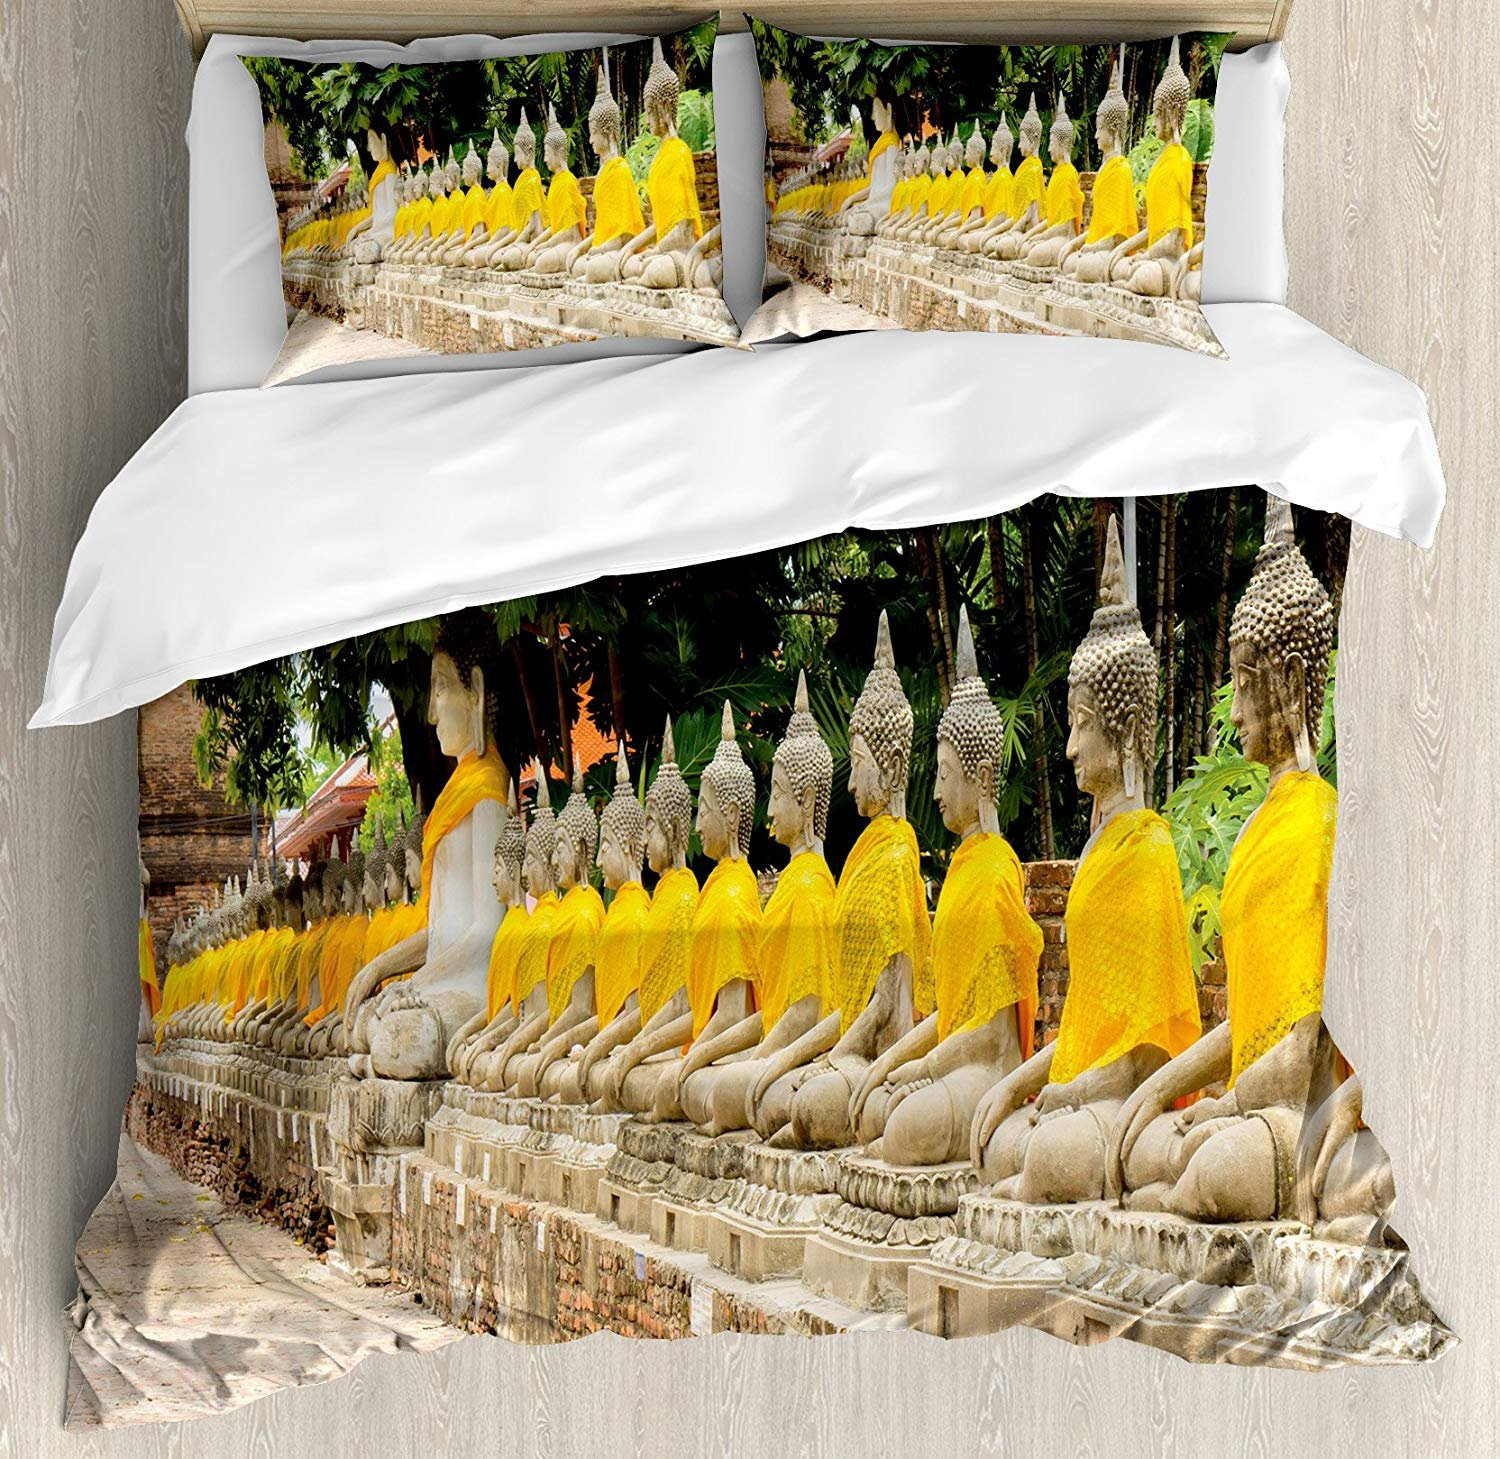 Asian Decor Twin Duvet Cover Sets 4 Piece Bedding Set Bedspread with 2 Pillow Sham, Flat Sheet for Adult/Kids/Teens, Picture of Religious Statues in Thailand Traditional Thai Home Decor